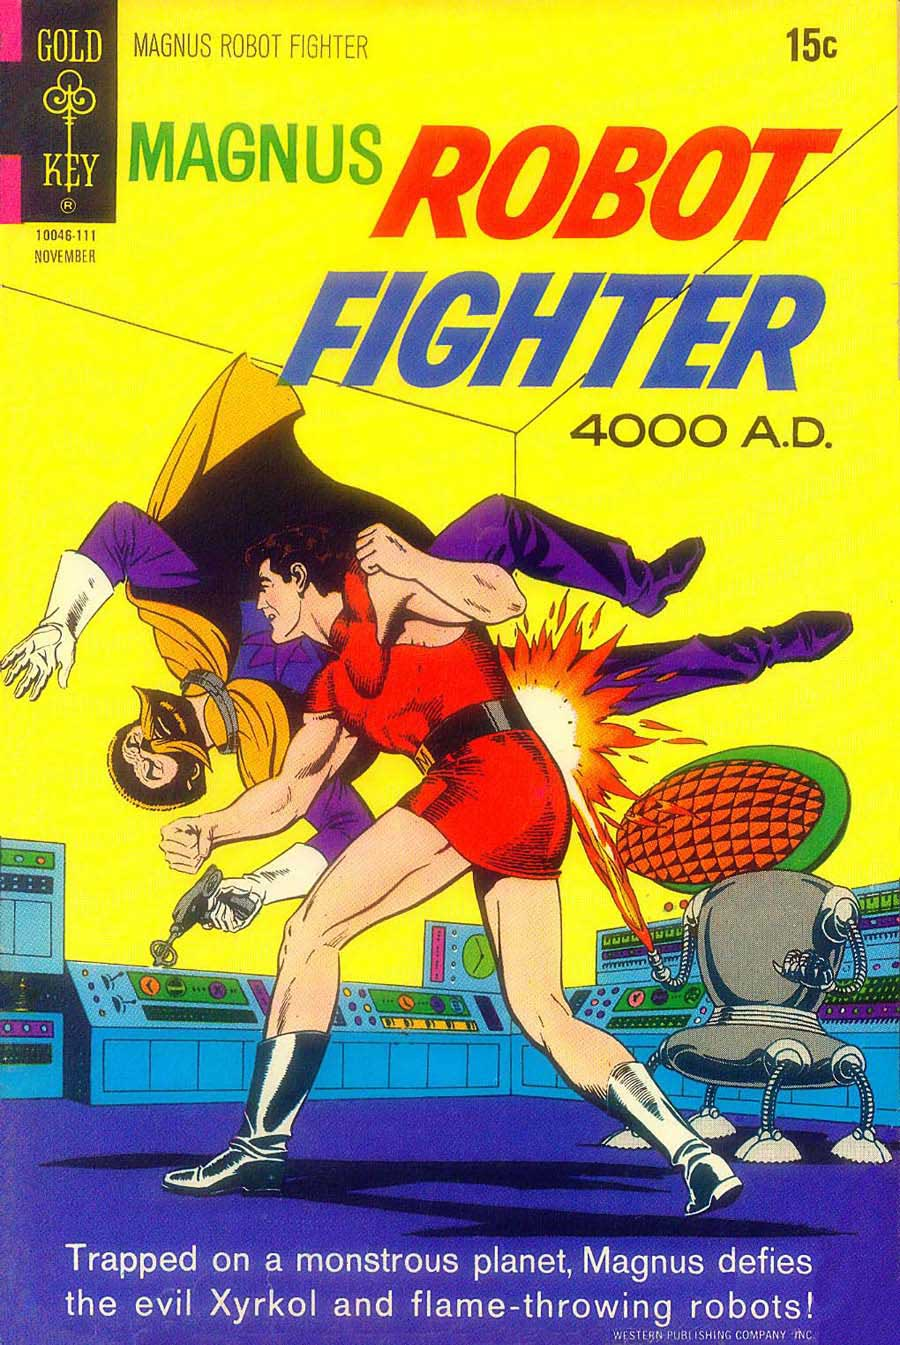 Magnus Robot Fighter #29 gold key silver age cover by Russ Manning